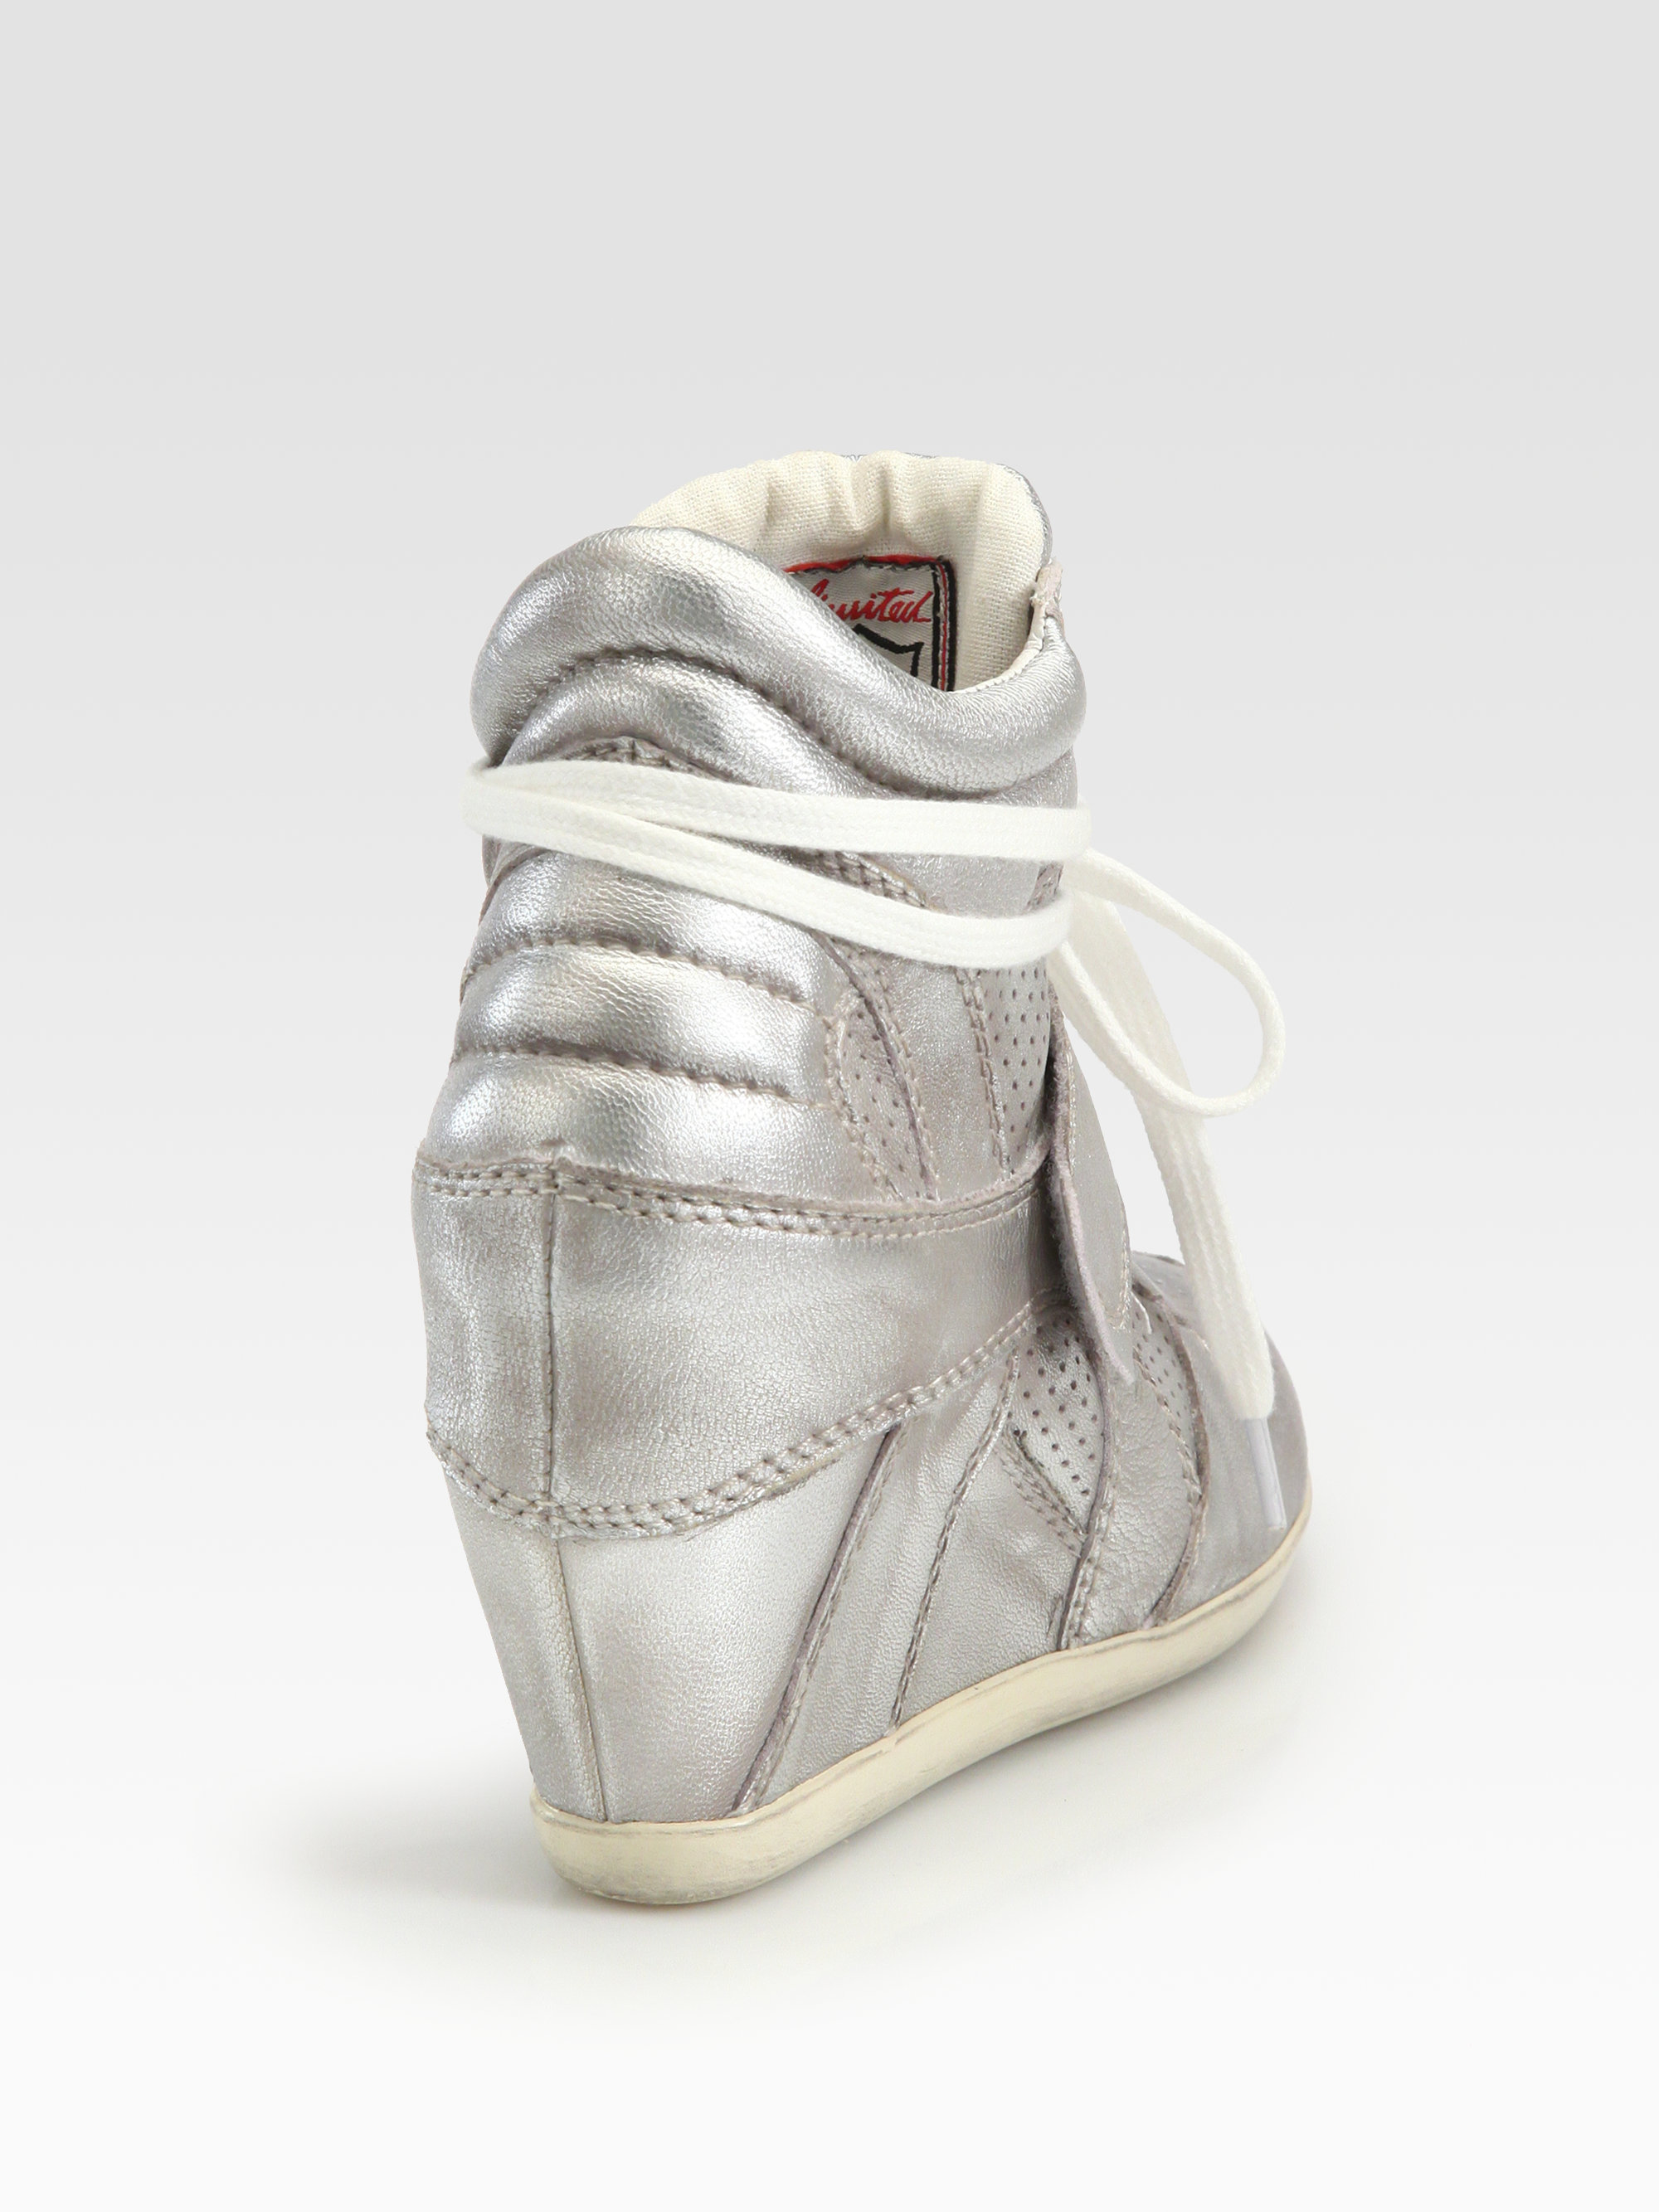 7fc84ef857ff Gallery. Previously sold at  Saks Fifth Avenue · Women s Wedge Sneakers  Women s Ash Bowie ...